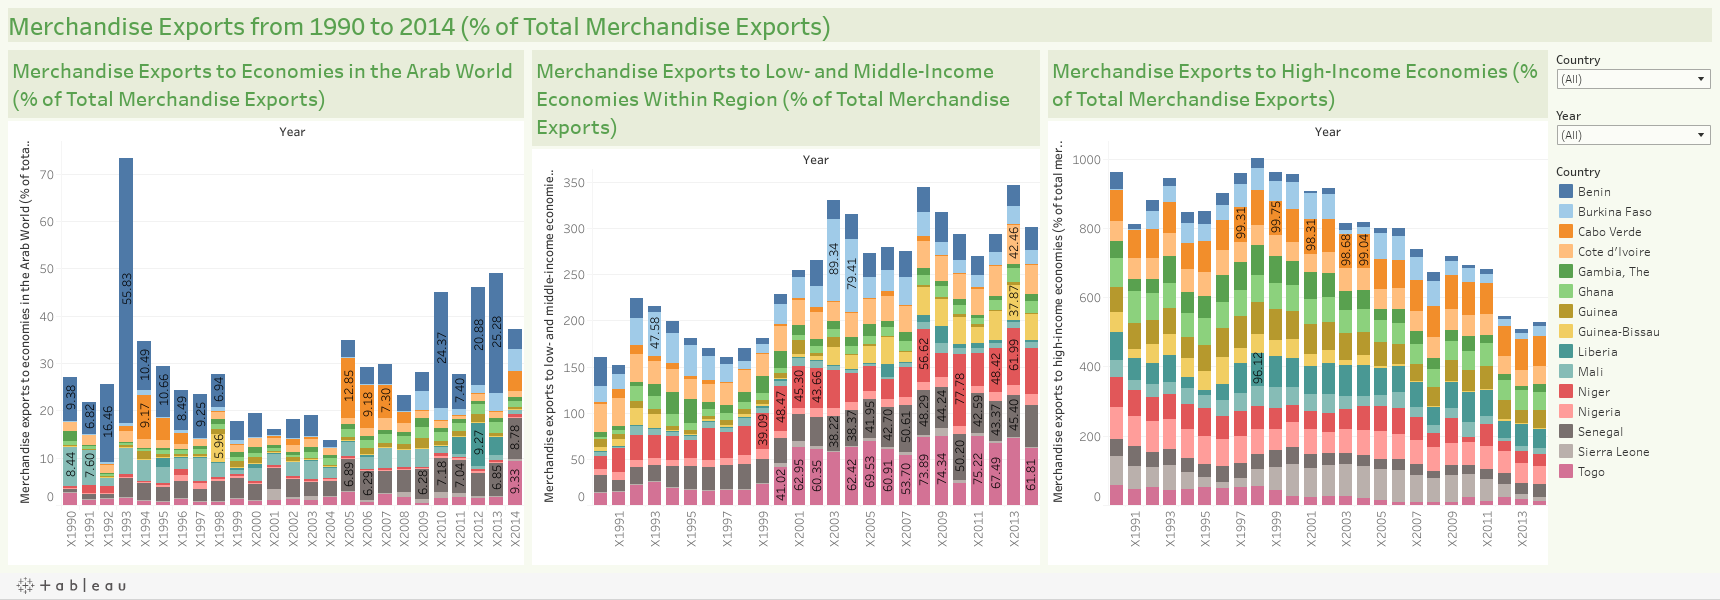 Merchandise Exports from 1990 to 2014 (% of Total Merchandise Exports)